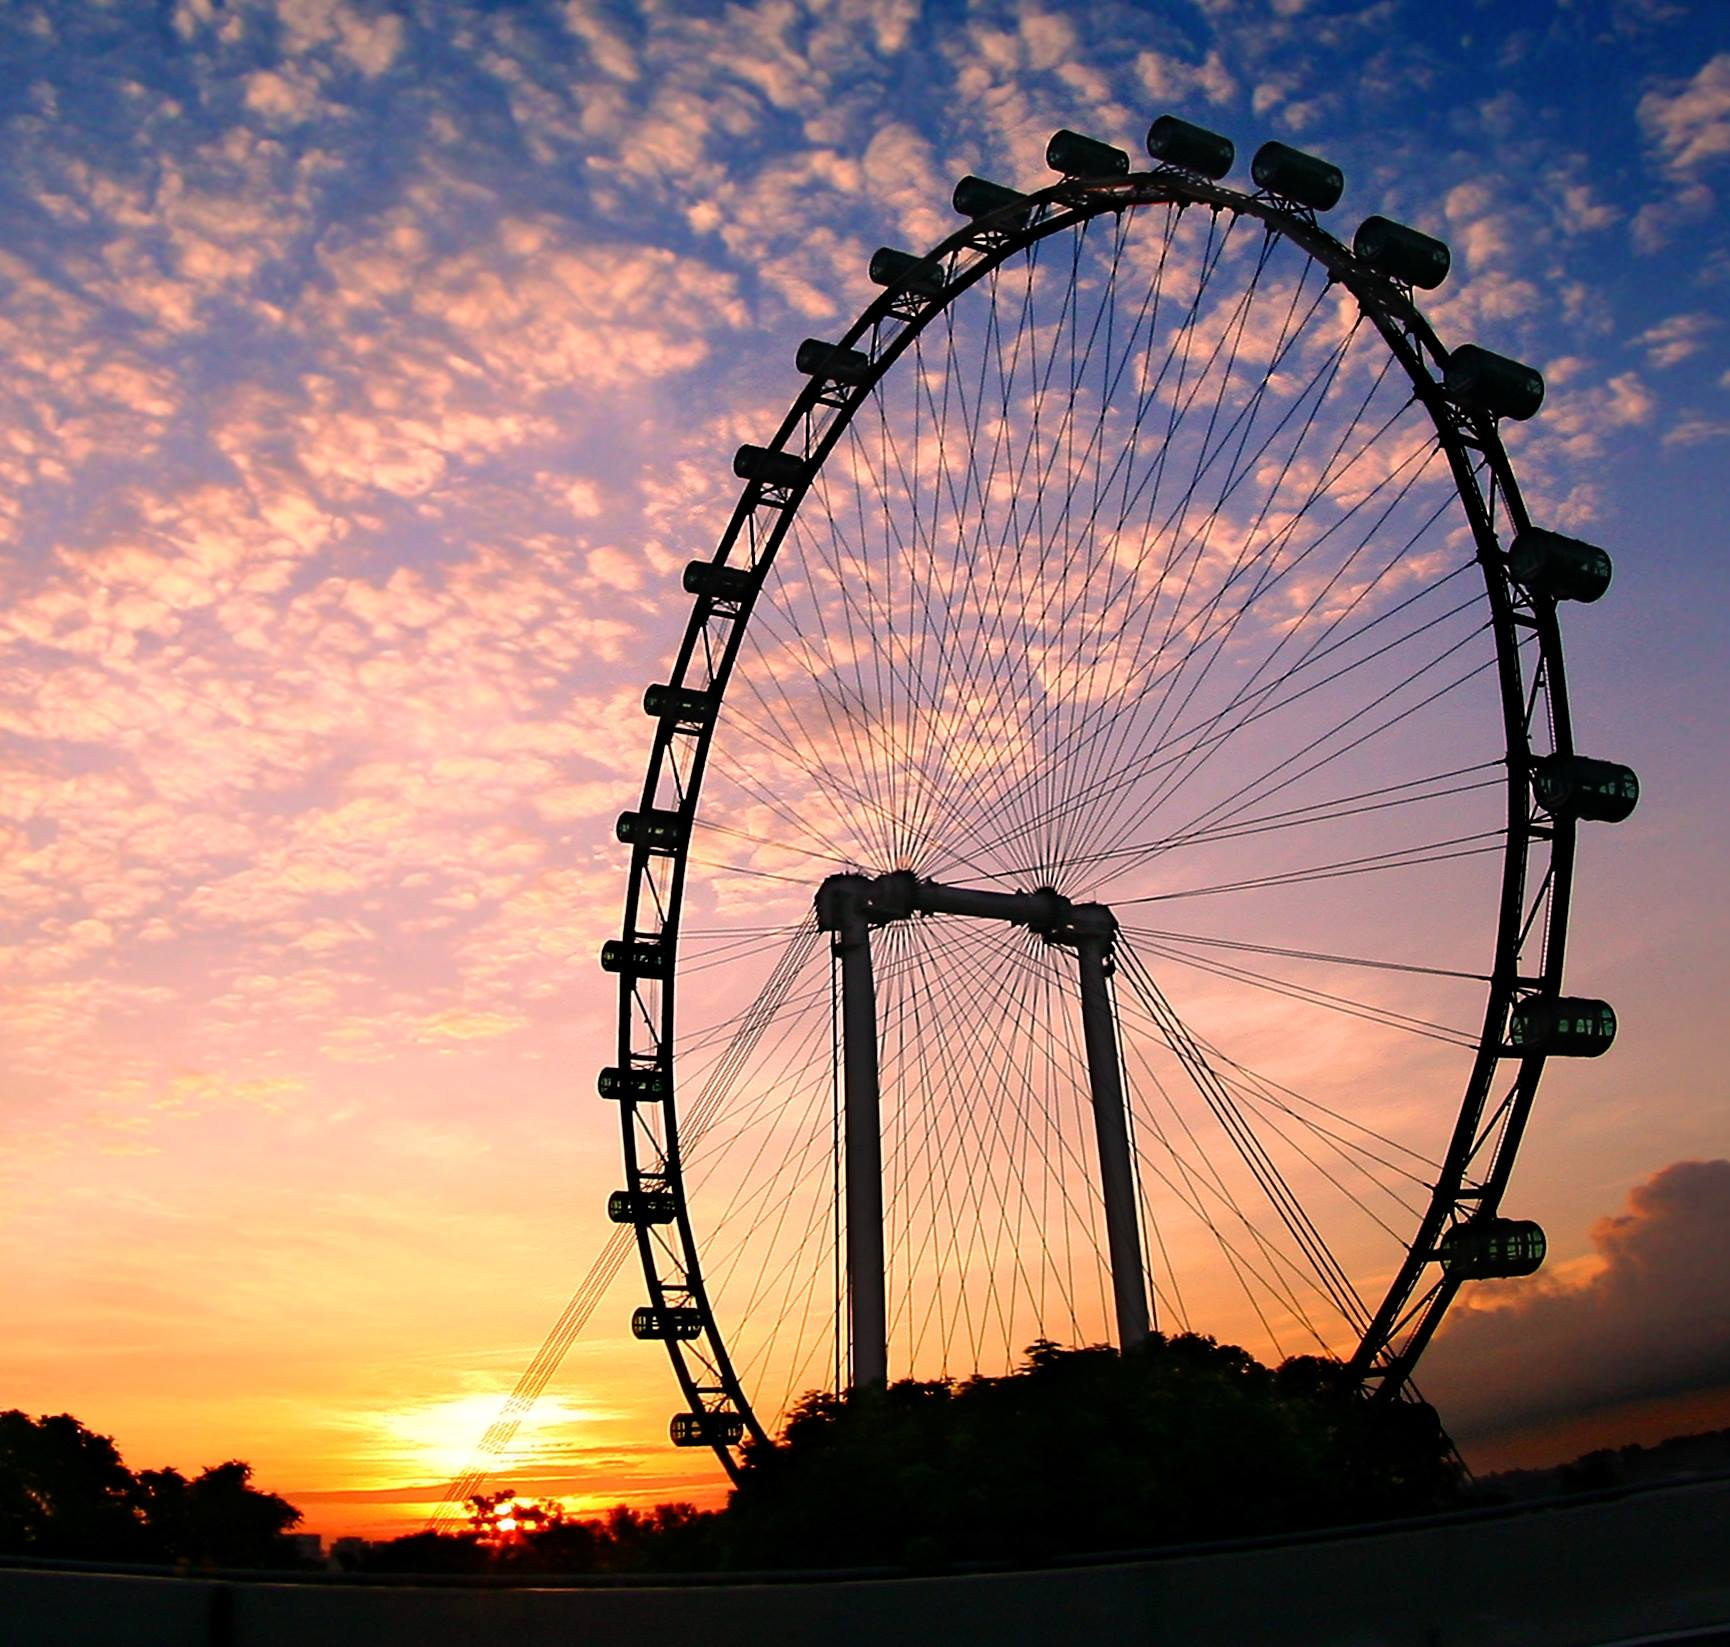 Photo courtesy: Singapore Flyer FB